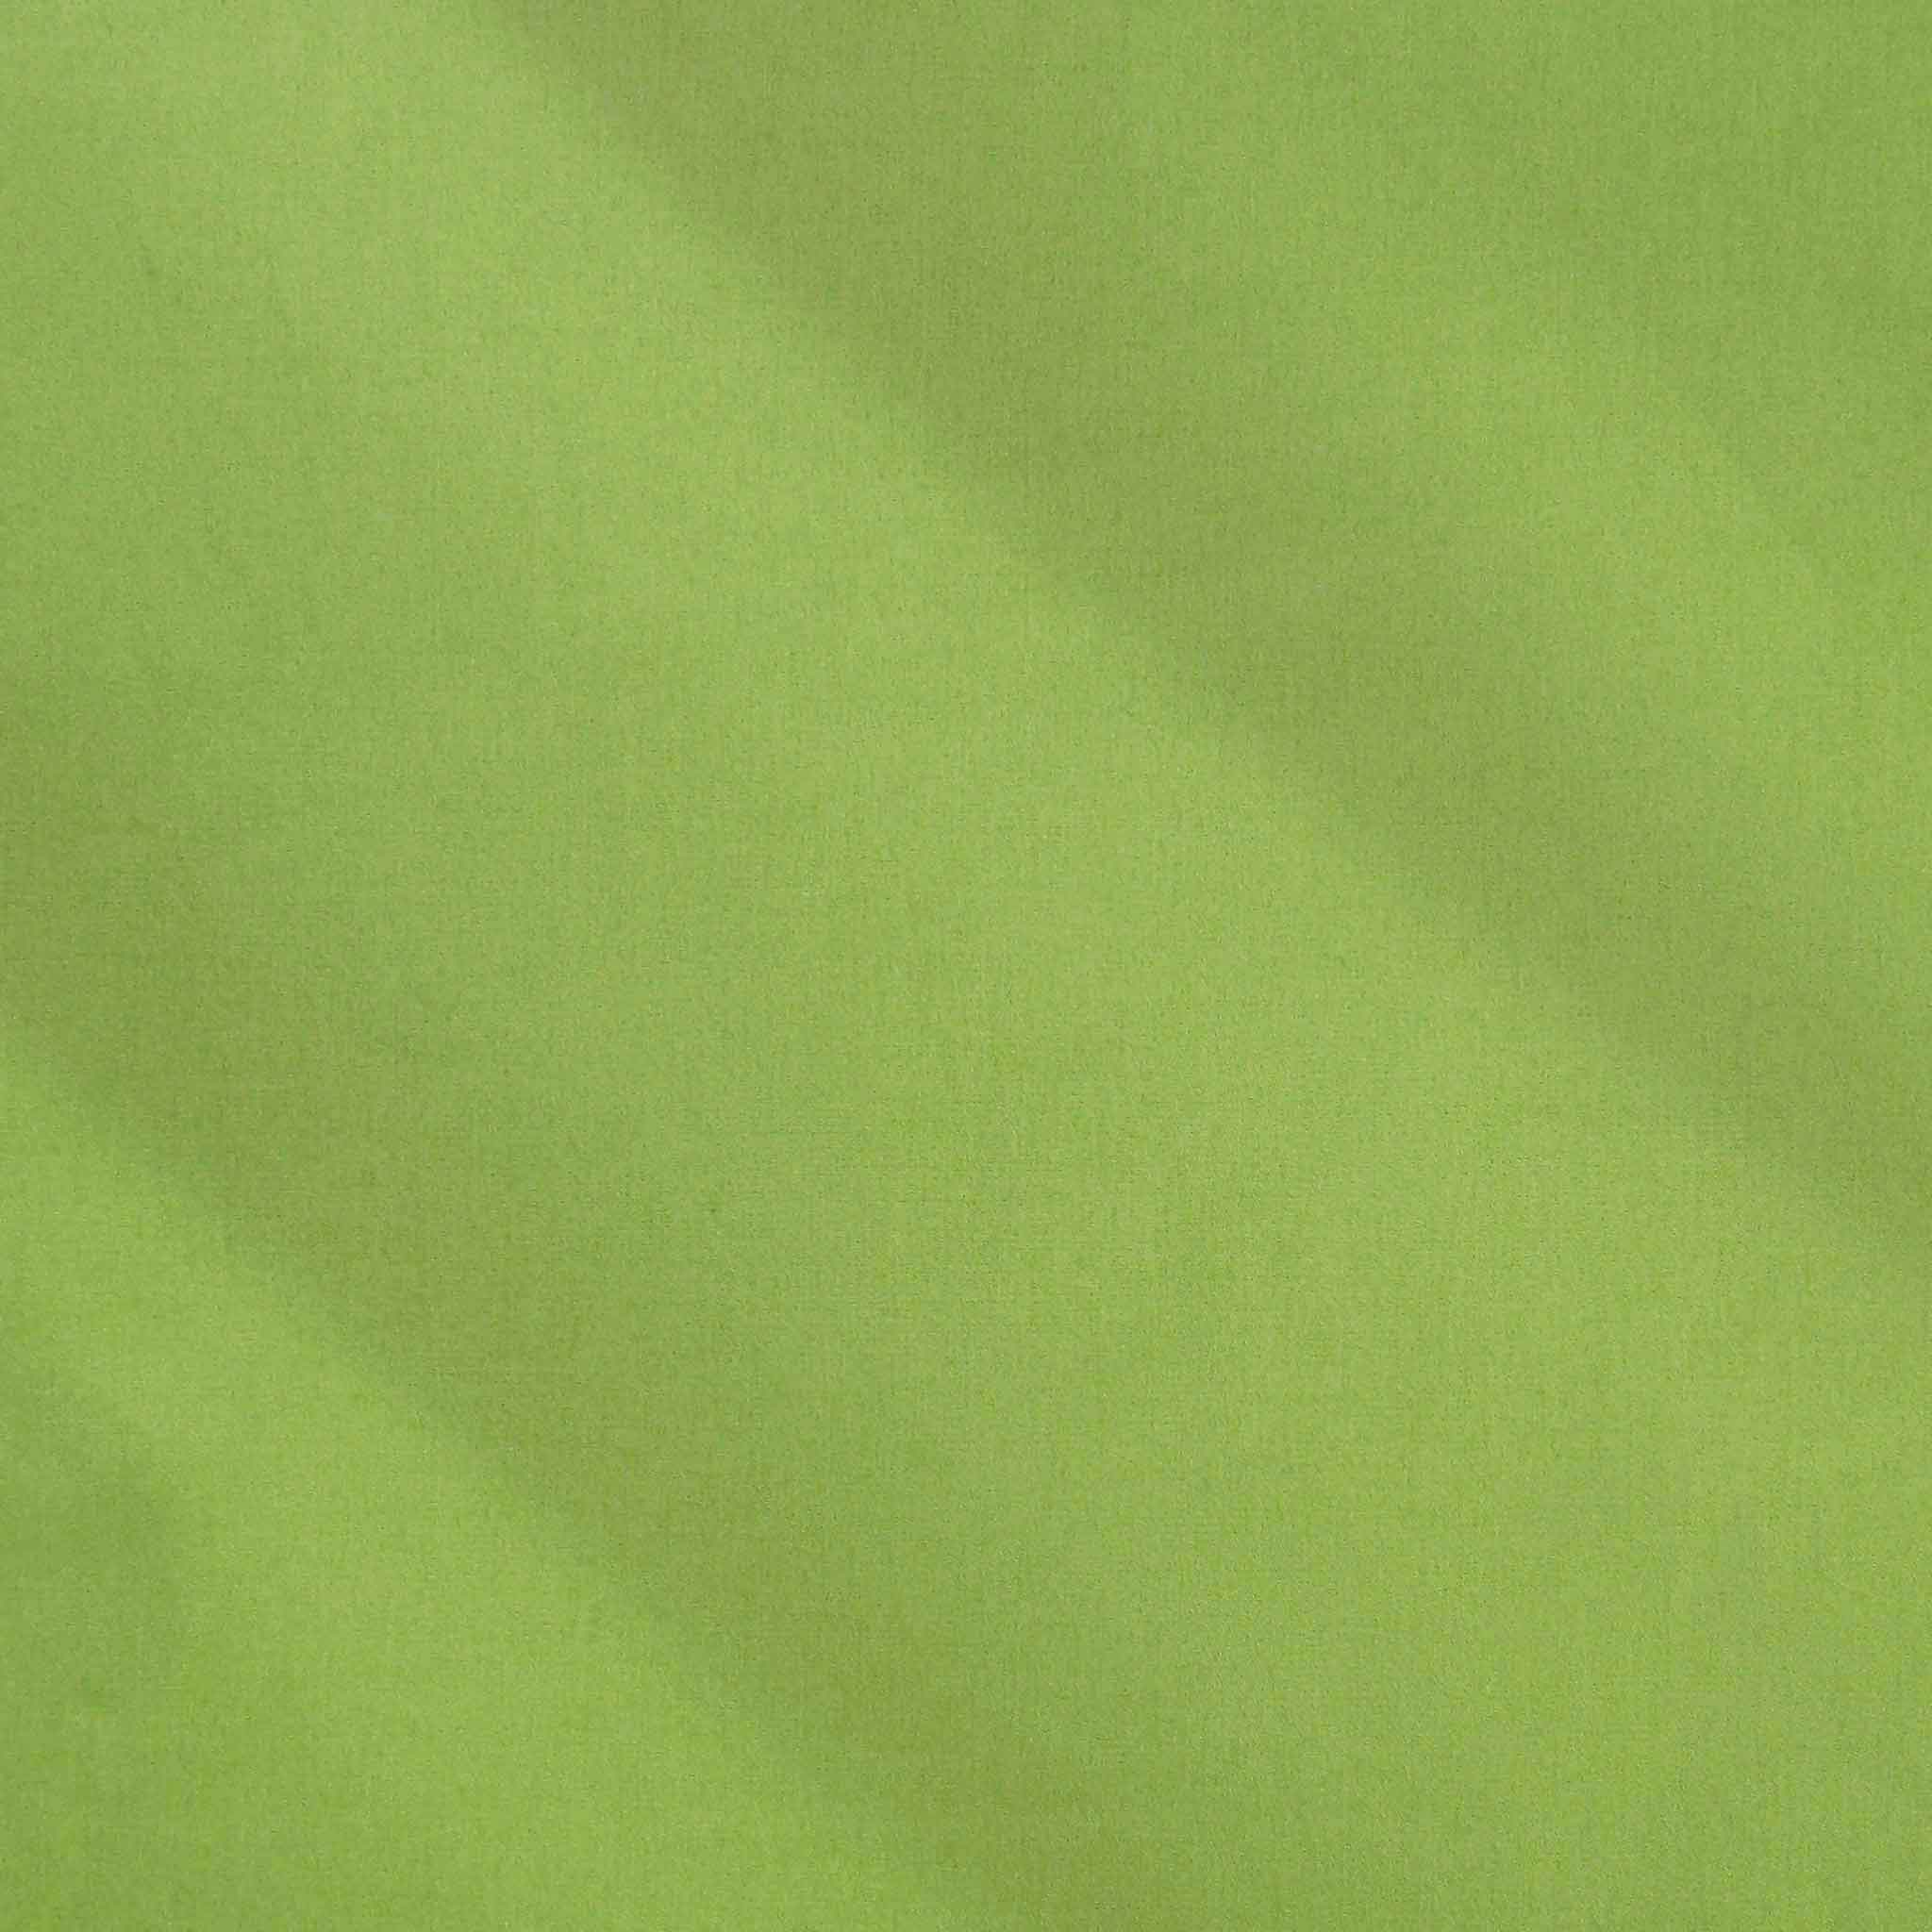 Sage Green Cotton Fabric by Rose & Hubble, Plain Olive Green Cotton Poplin Fabric